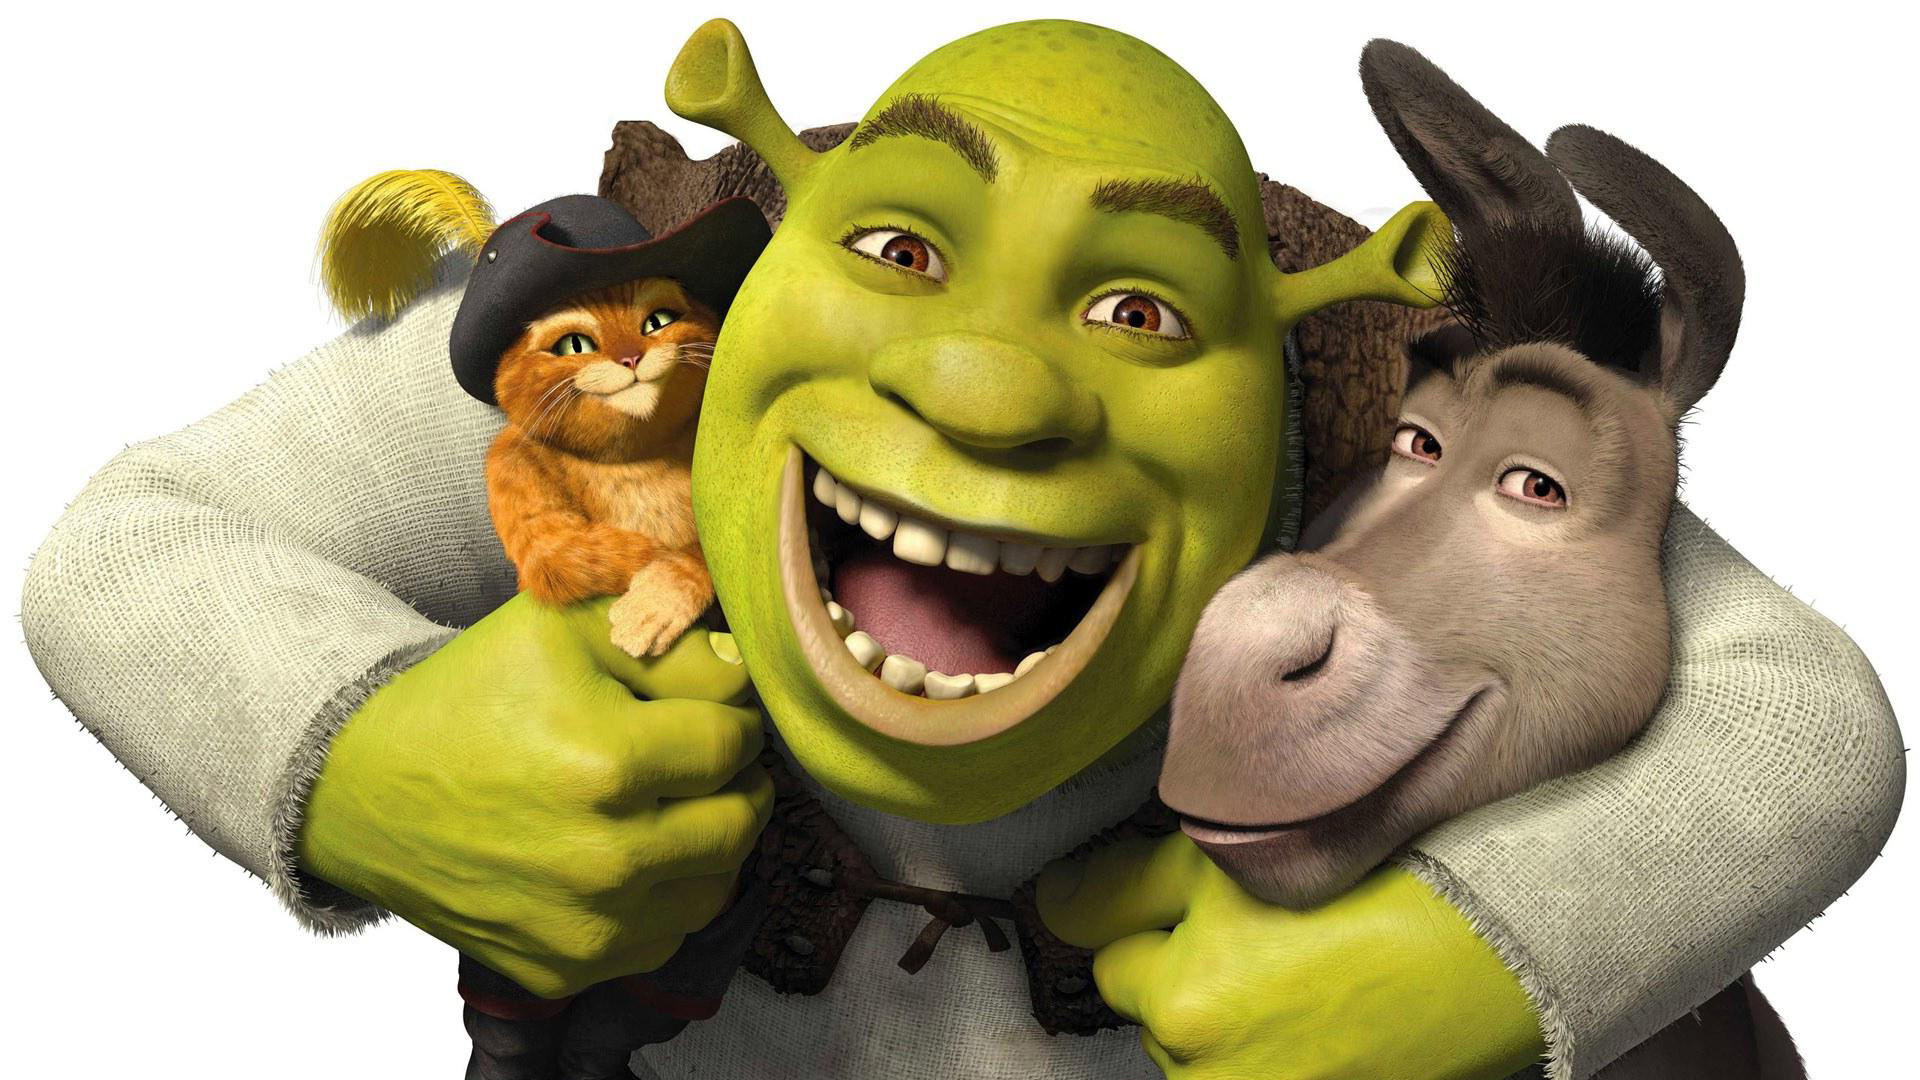 78+ images about Shrek on Pinterest | A well, Toys and Thursday